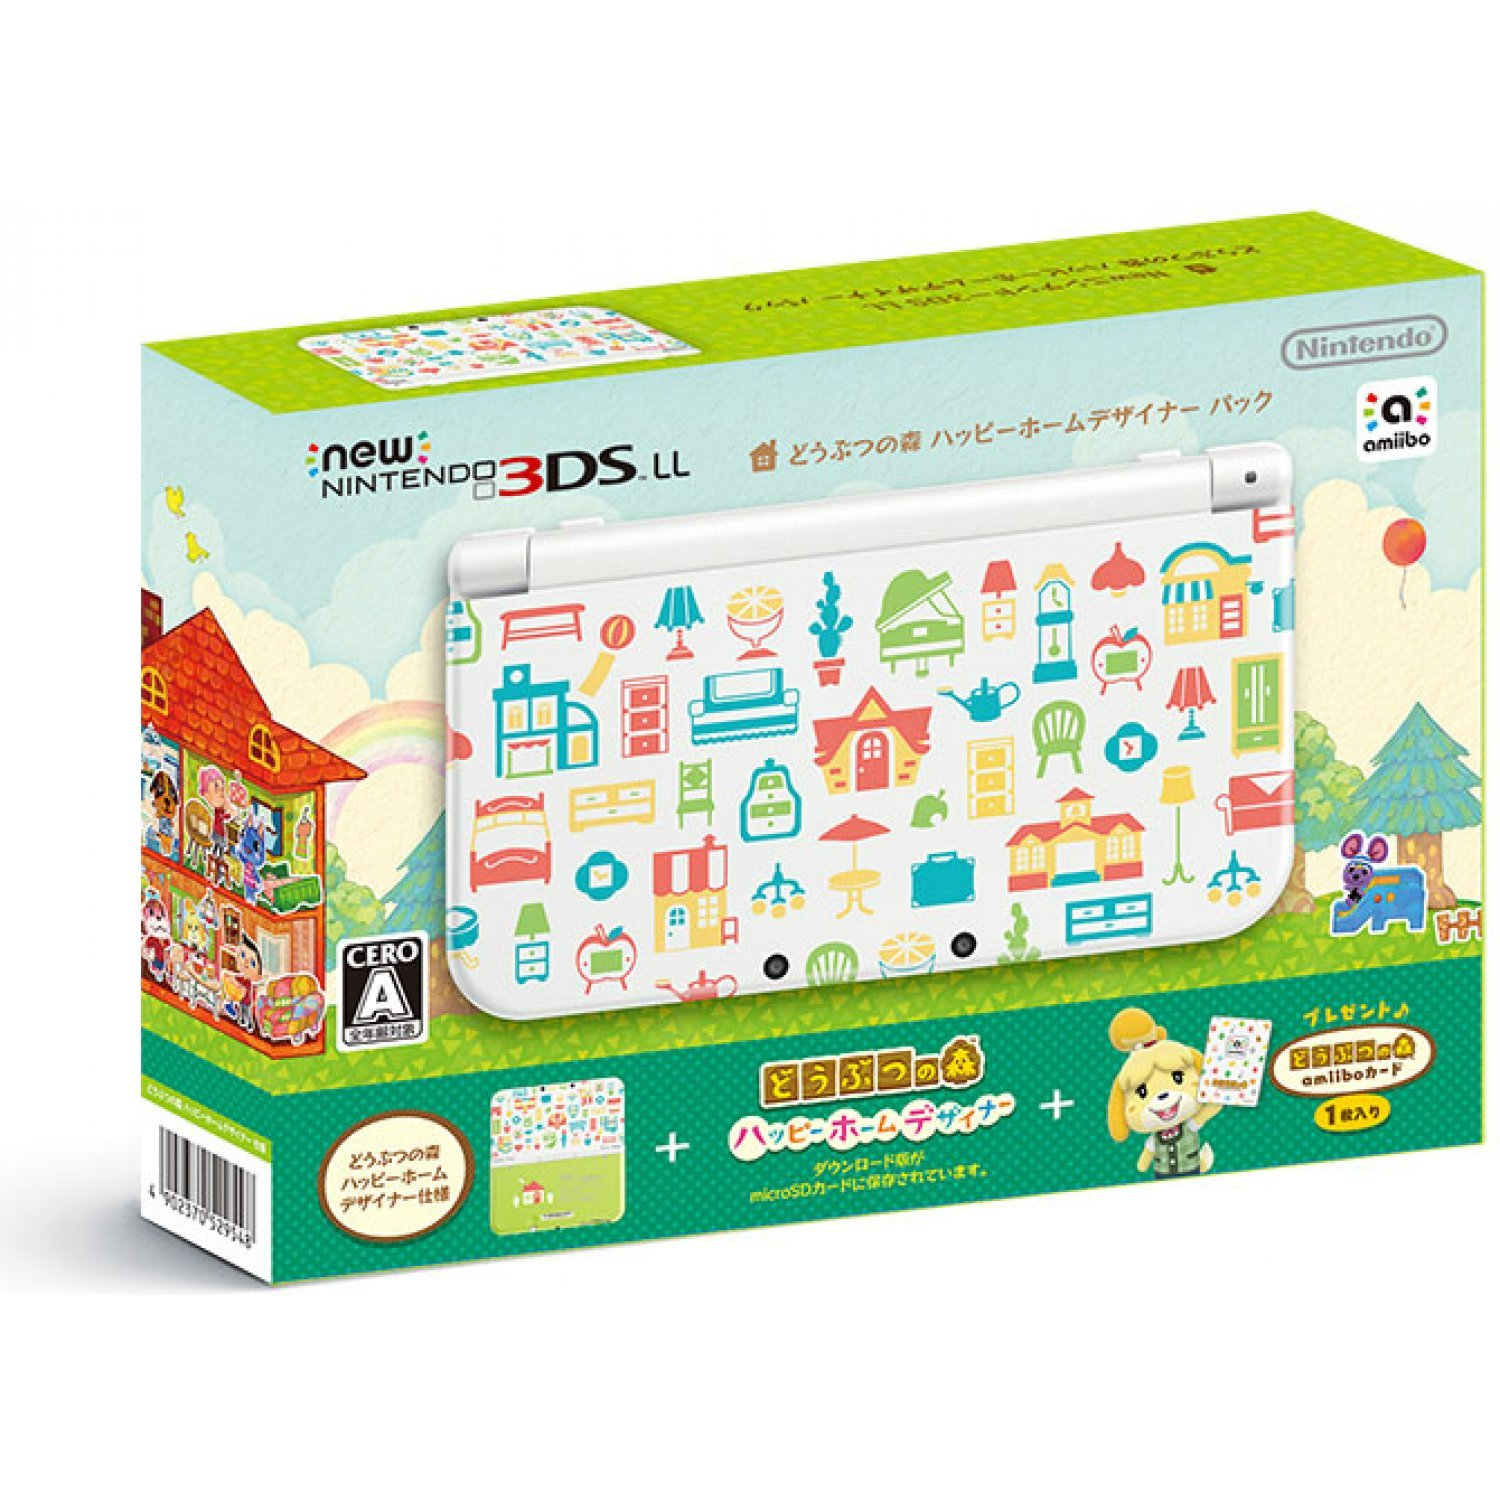 New Nintendo 3DS LL [Doubutsu no Mori: Happy Home Designer Pack] on xbox home, wii home, playstation 4 home,